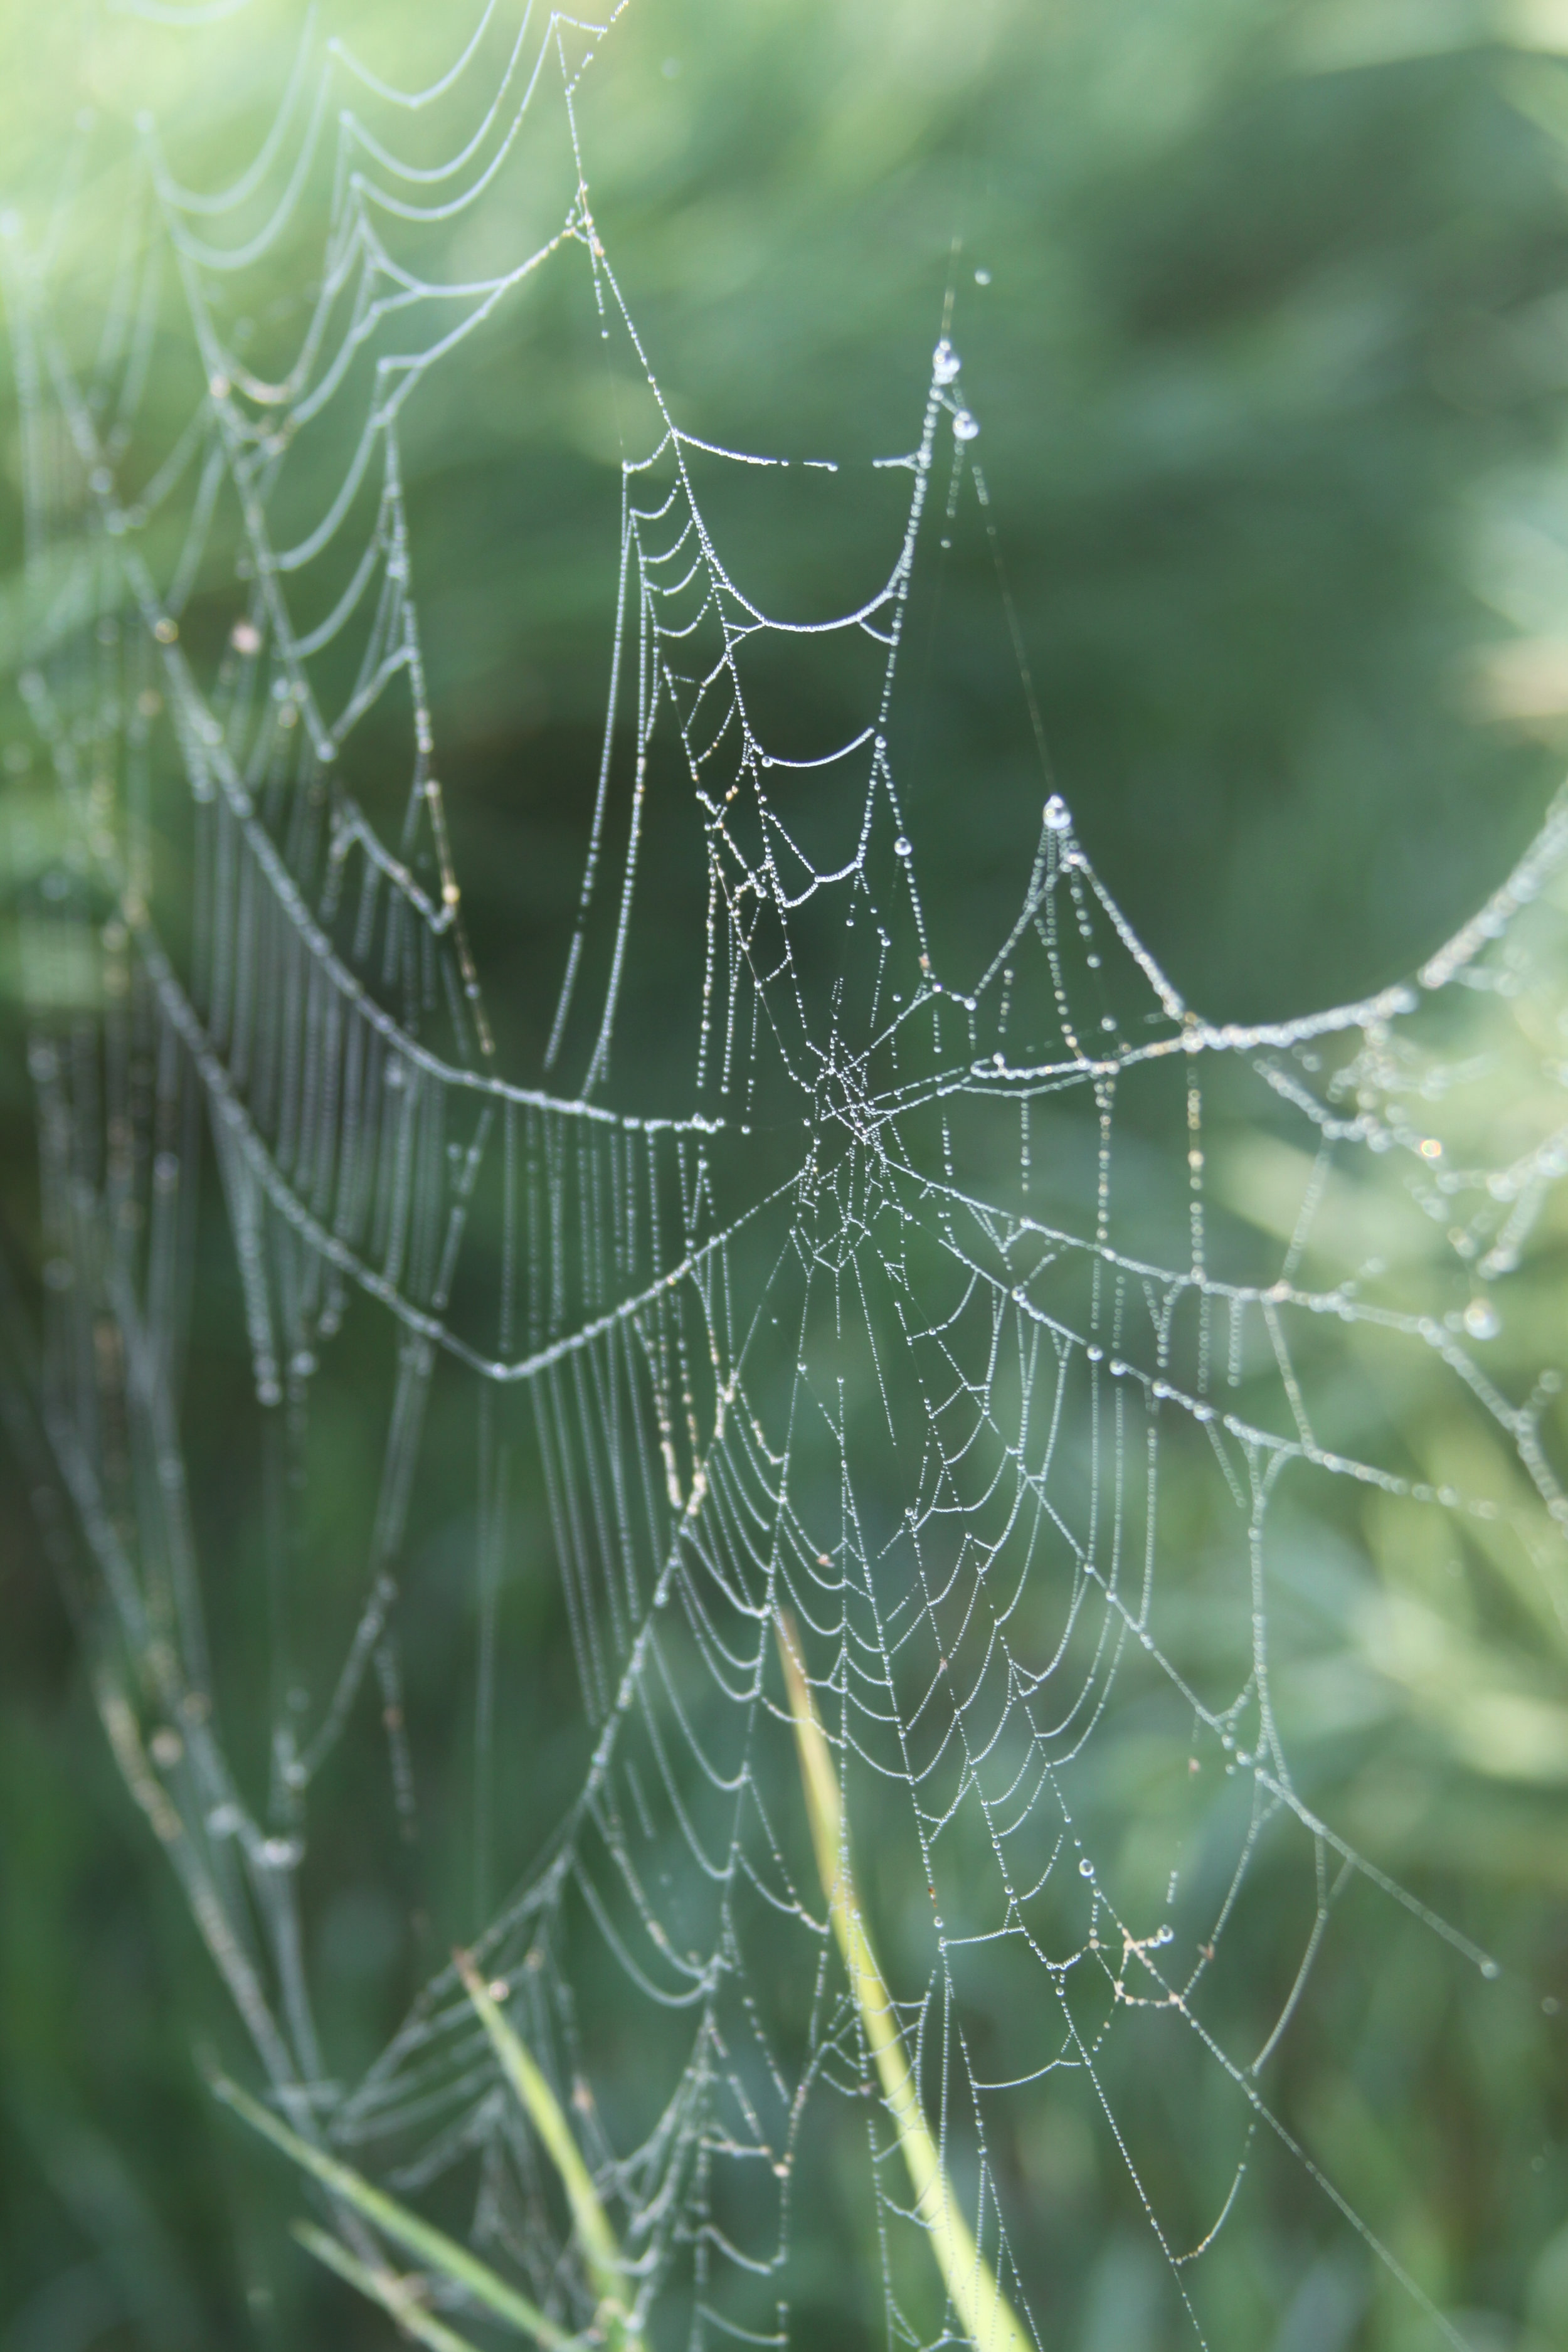 A Dew Gilded Spider's Web